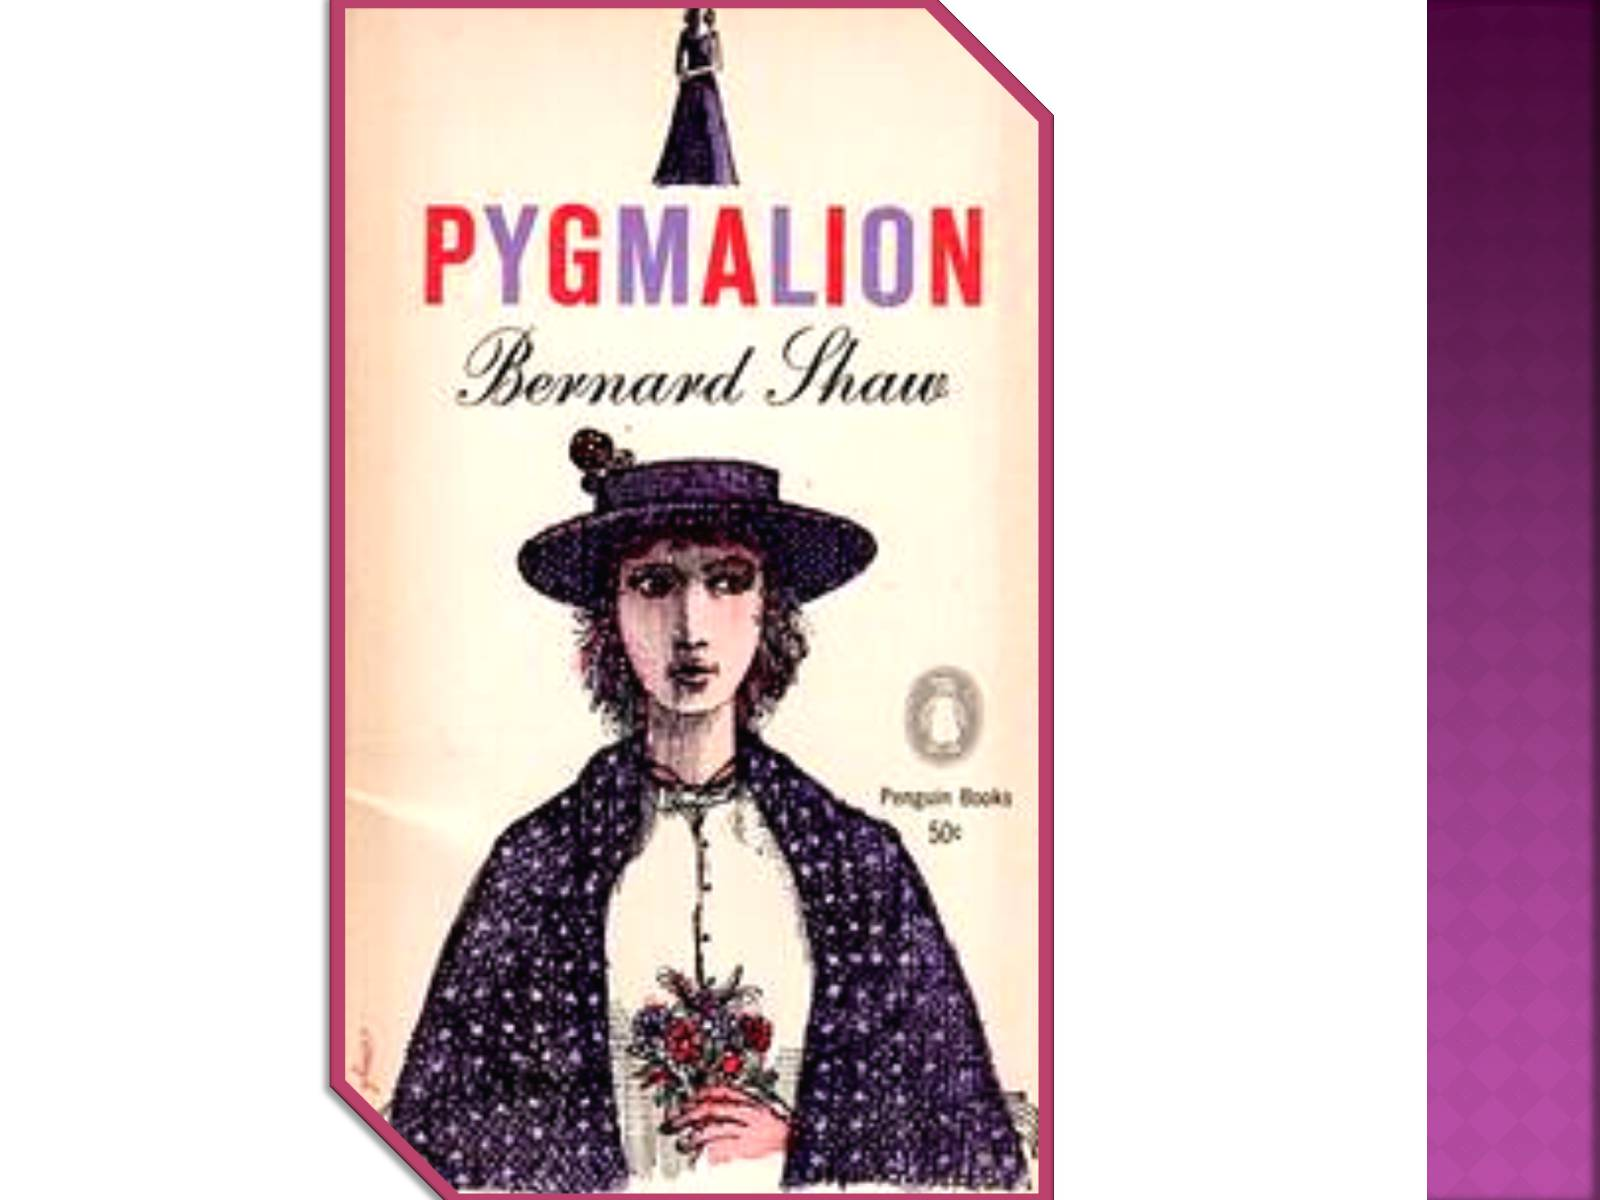 an analysis of the character of professor higgins in pygmalion by george bernard shaw Pygmalion by george bernard shaw 80,304 ratings, 390 average rating, 1,930 reviews i shall always be a flower girl to professor higgins, because he always treats me as a flower girl, and always will but i know i can mr higgins: youre tempting the girl it's not right she should think of the future.